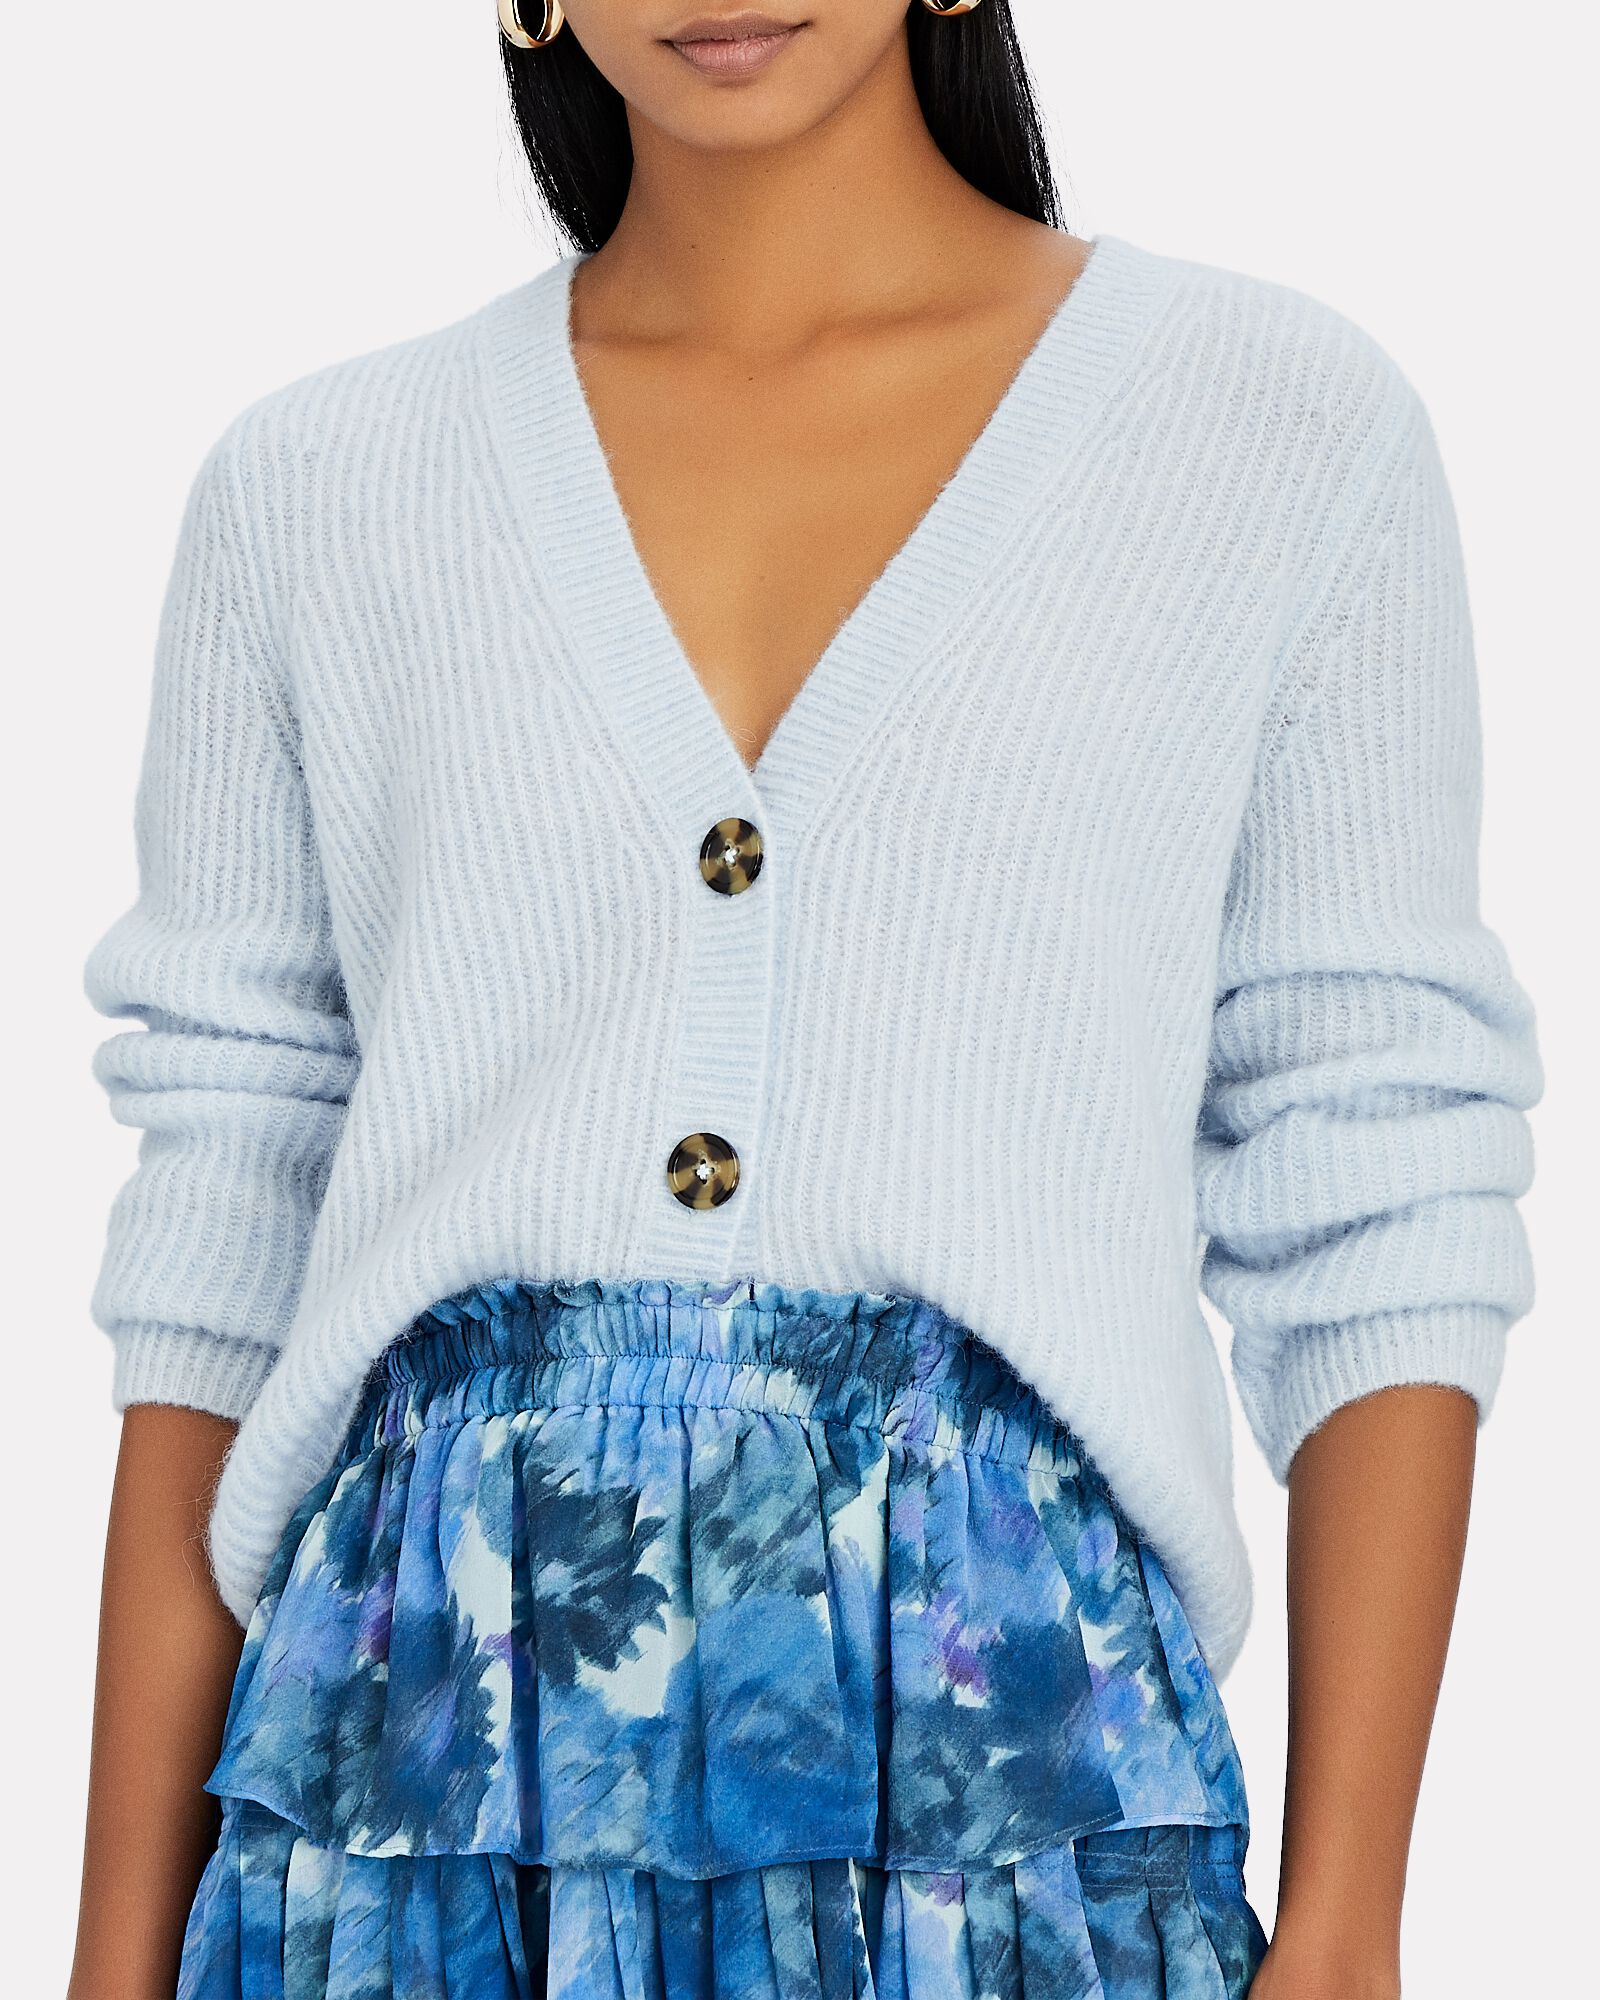 Priscilla Cropped V-Neck Cardigan, BLUE-LT, hi-res